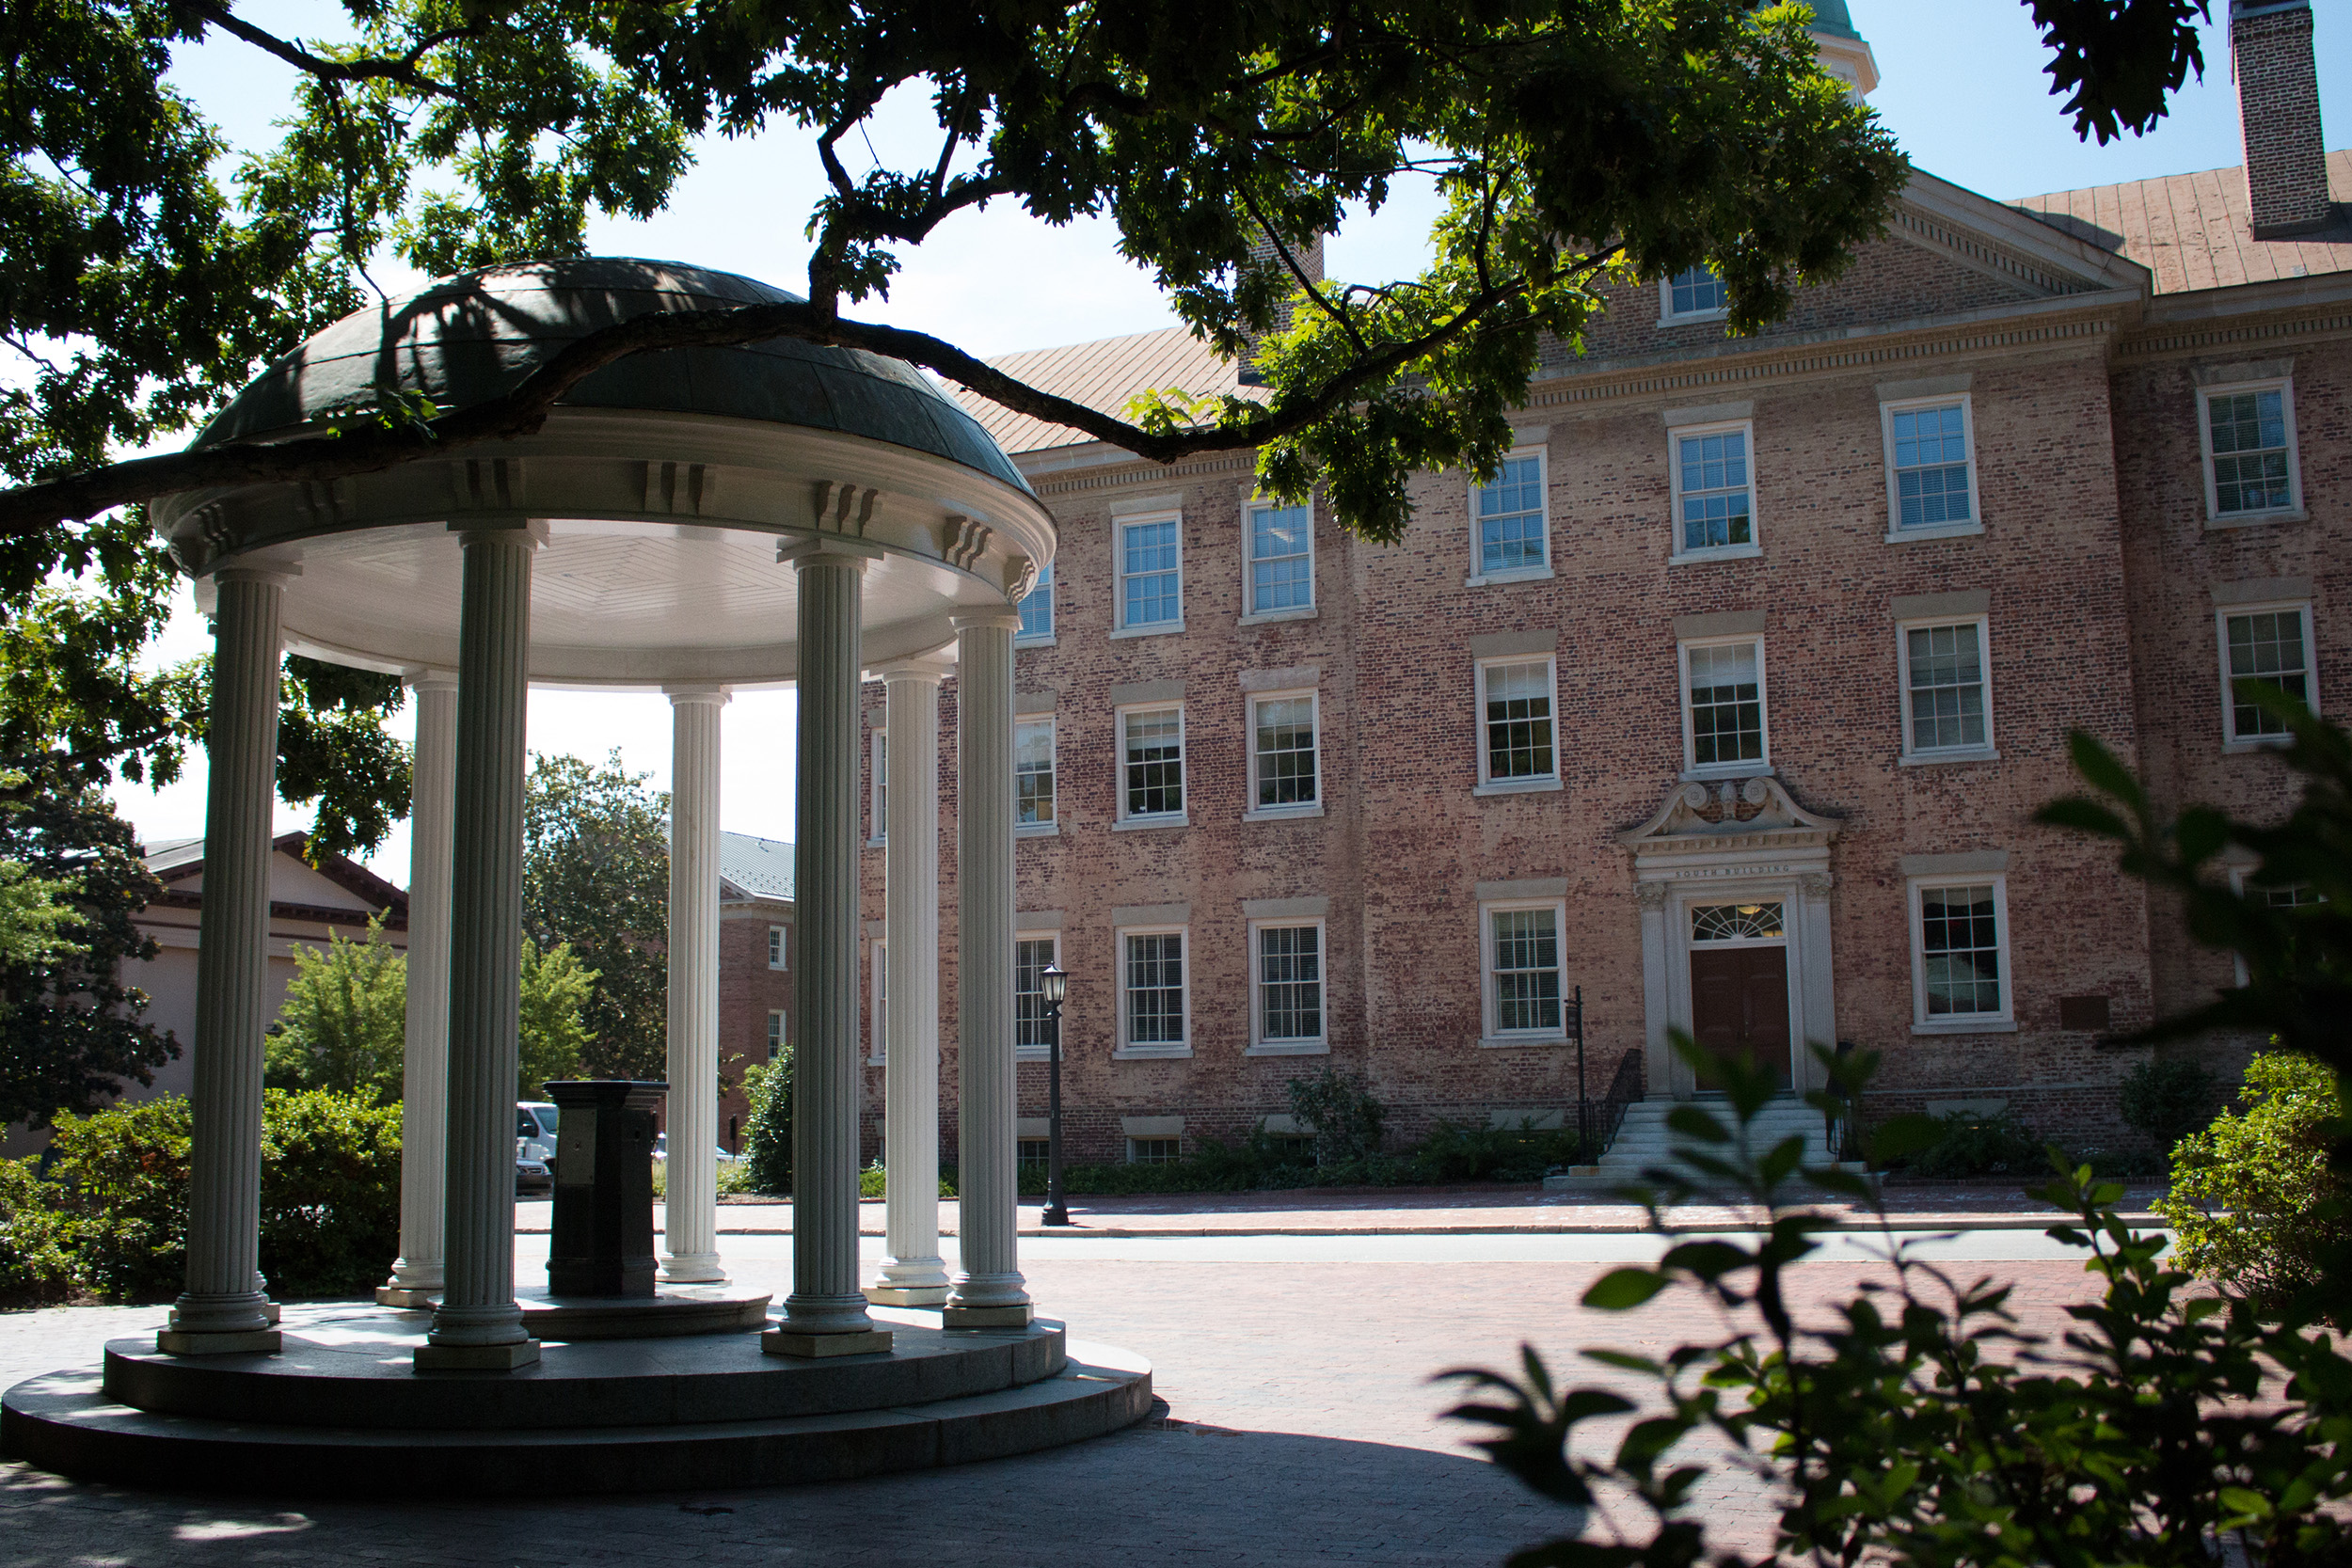 The College of Arts at UNC-Chapel Hill.